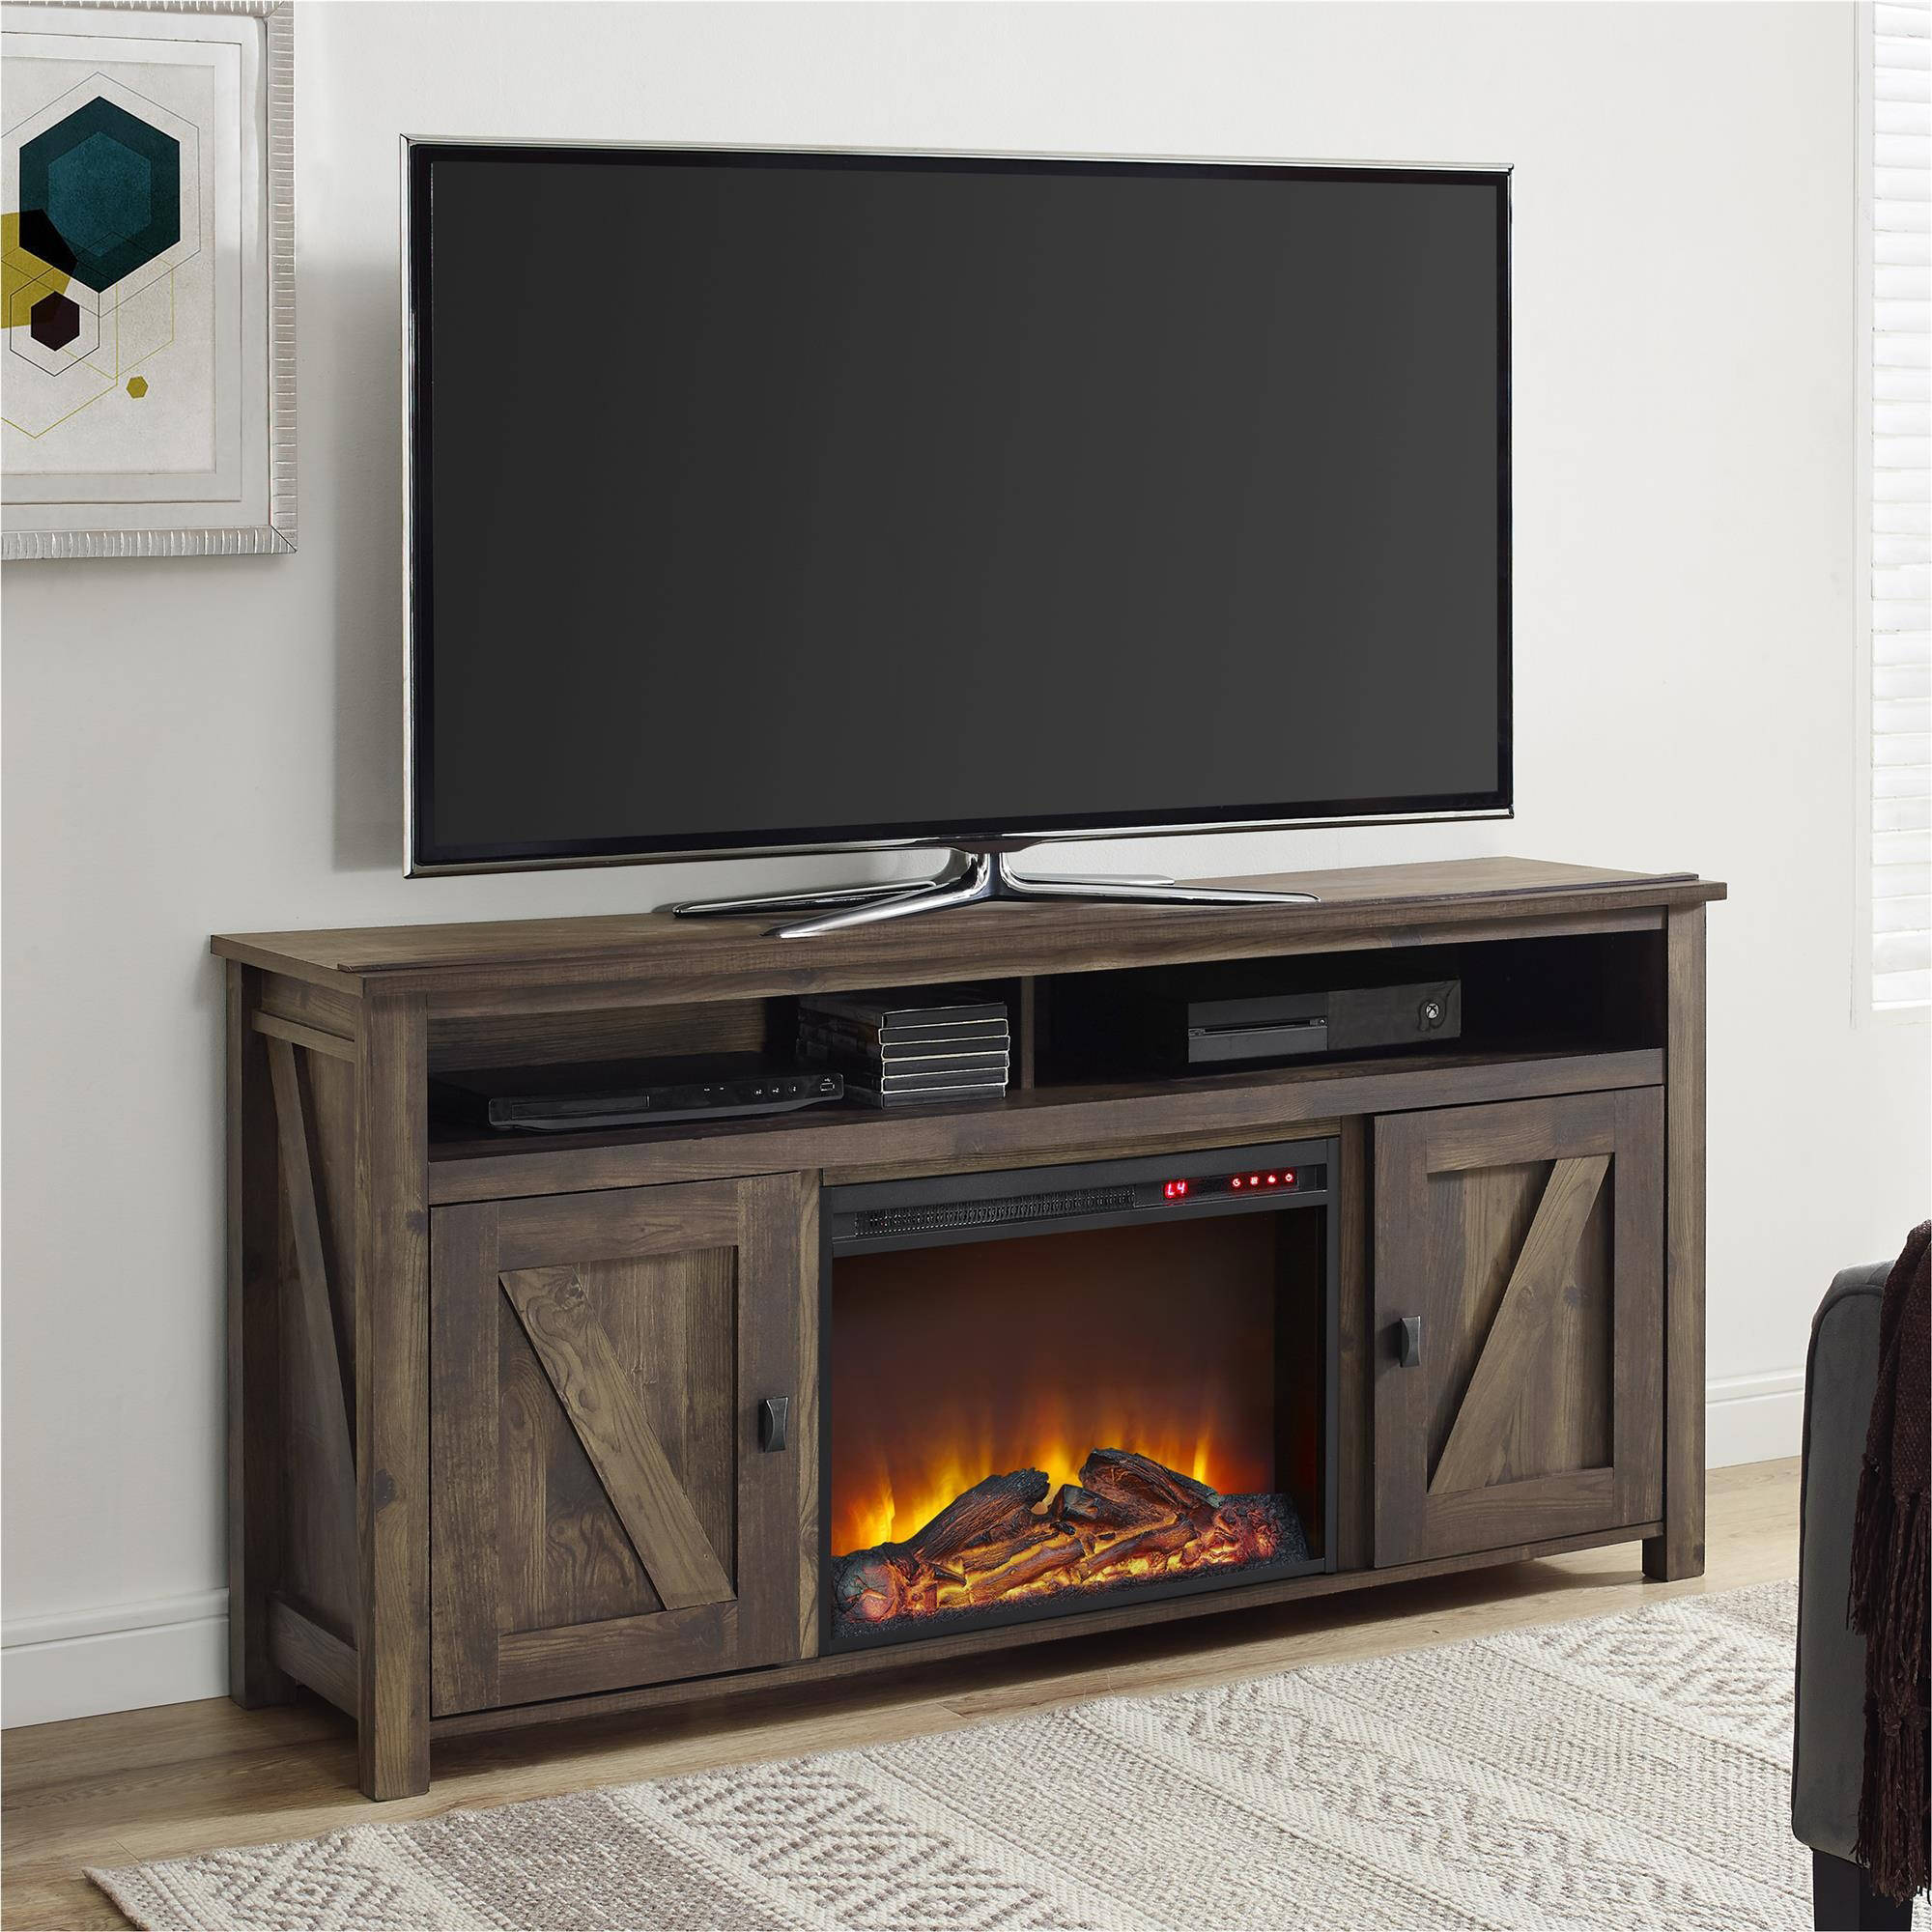 Farmington Electric Fireplace TV Console For TVs, Multiple Colors And Sizes    Walmart.com